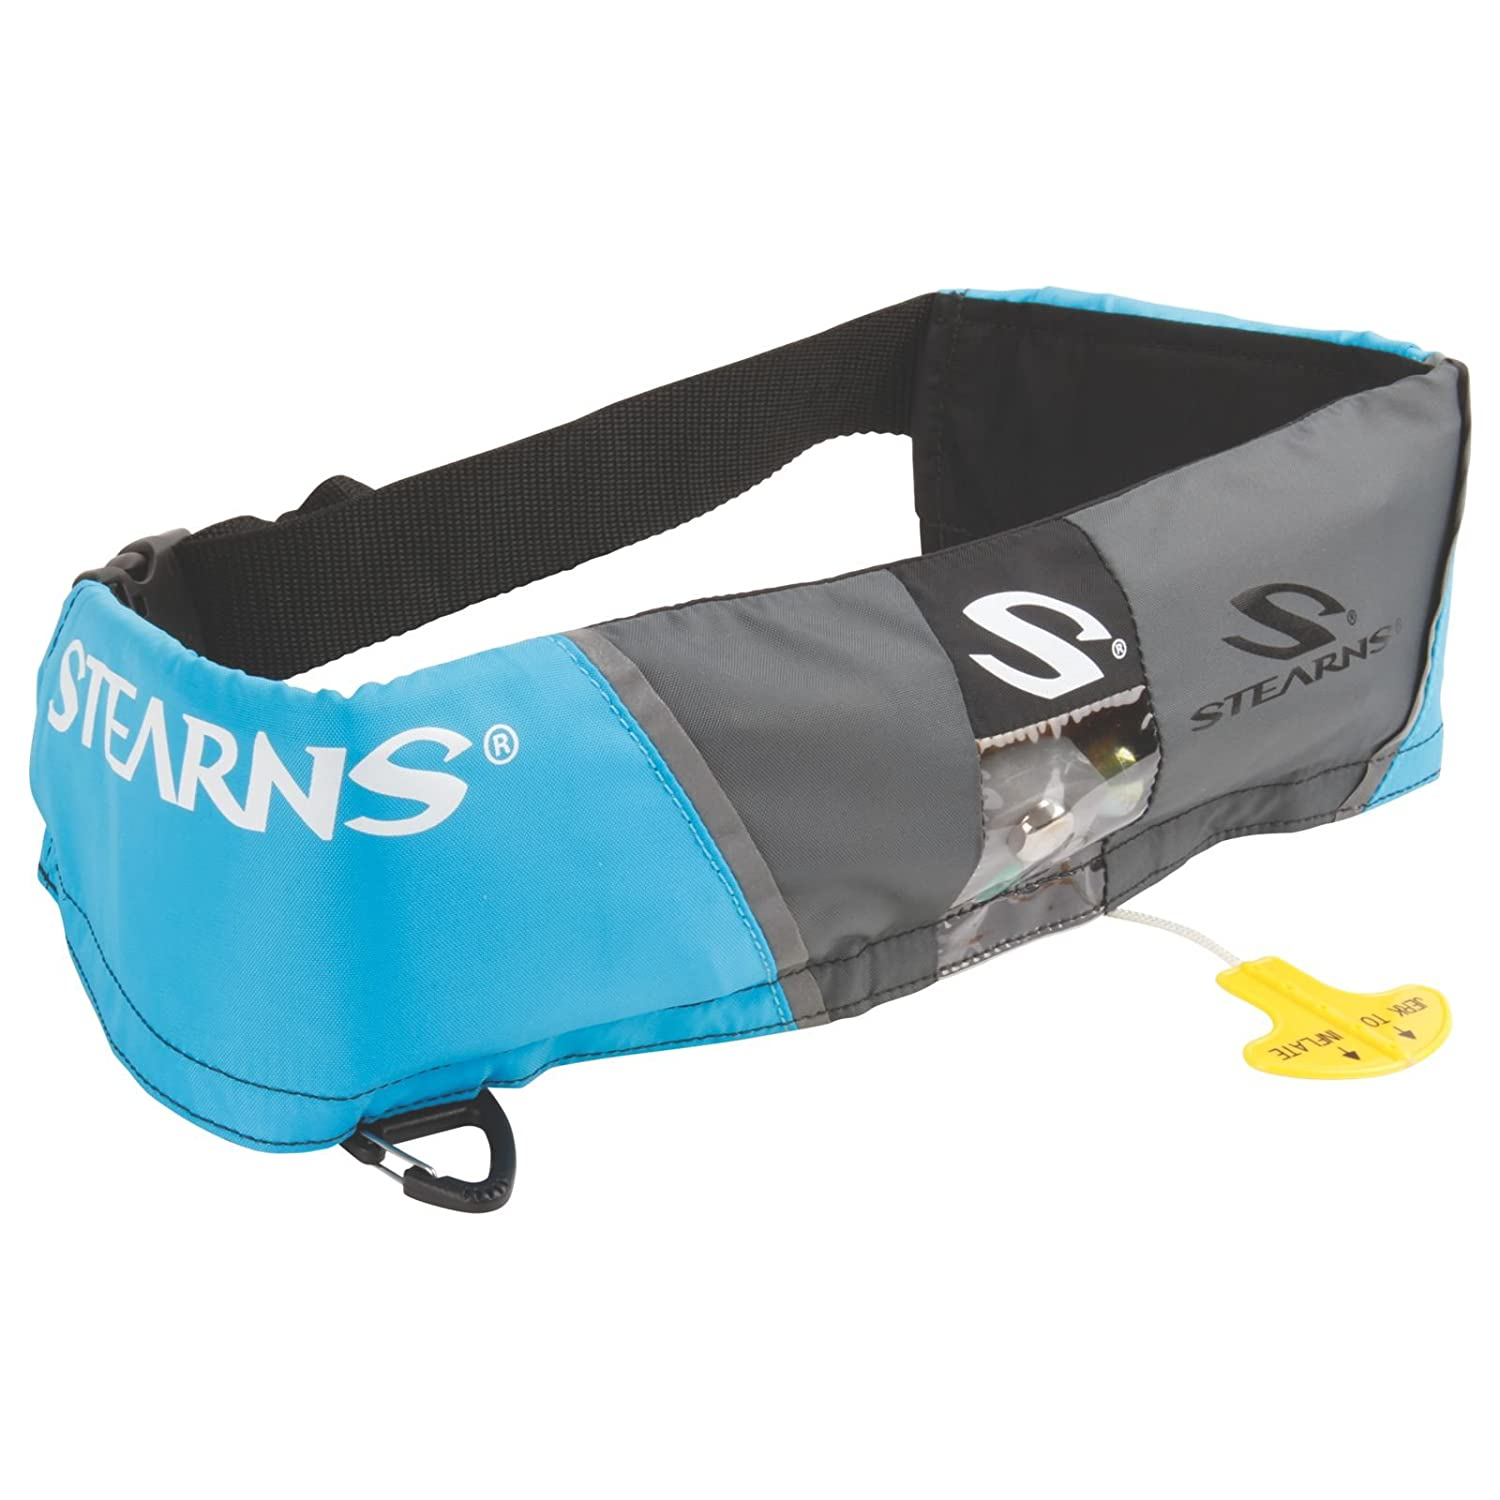 Amazon.com : Stearns 16 Gram Manual Belt Pack The waist belt inflatable personal flotation device we utilize – mainly used with our stand-up paddle board or riding in the dinghy.